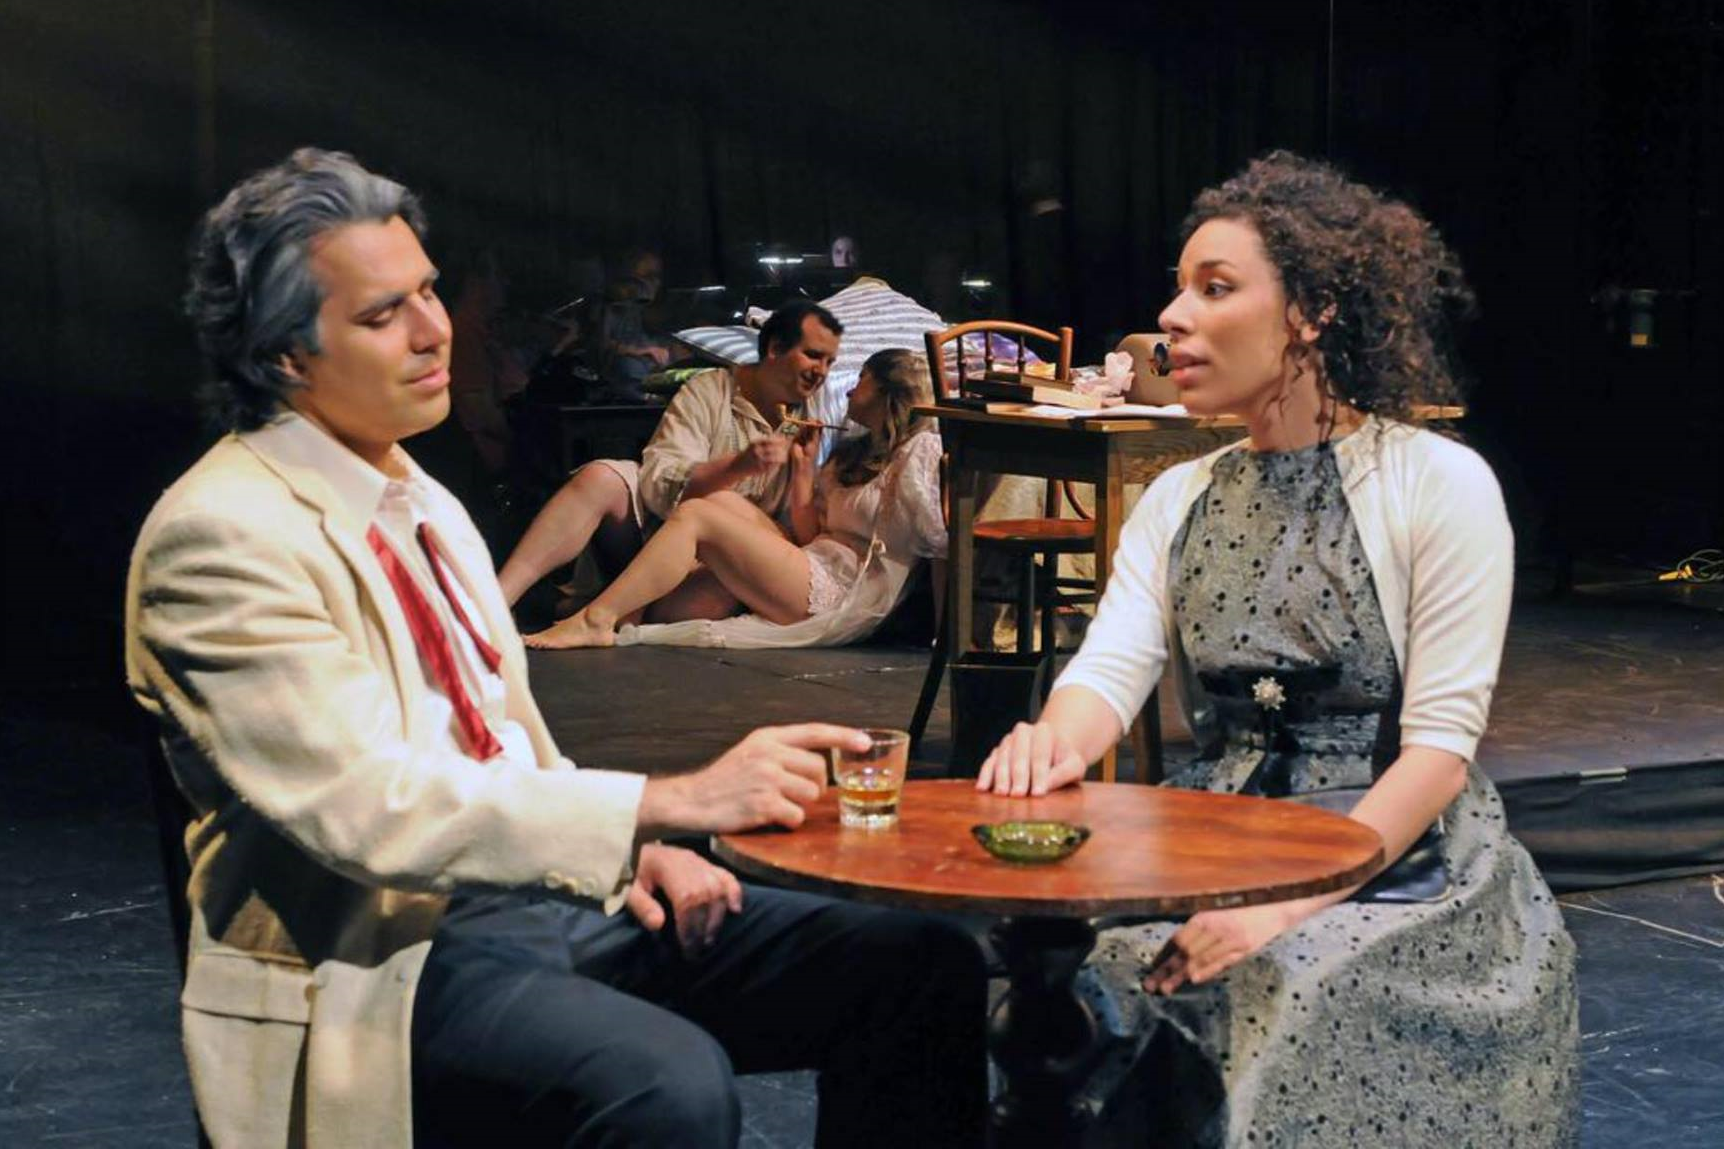 (l. to r.) Joe Flaxman (Harry), Joe Shadday (Ahmed), Danielle Connelly (Lizzy), and Mimi Melisa Bonetti (Clare) in the Kentucky Opera premiere production of  A Woman in Morocco . (Photo credit: Patrick Pfister)